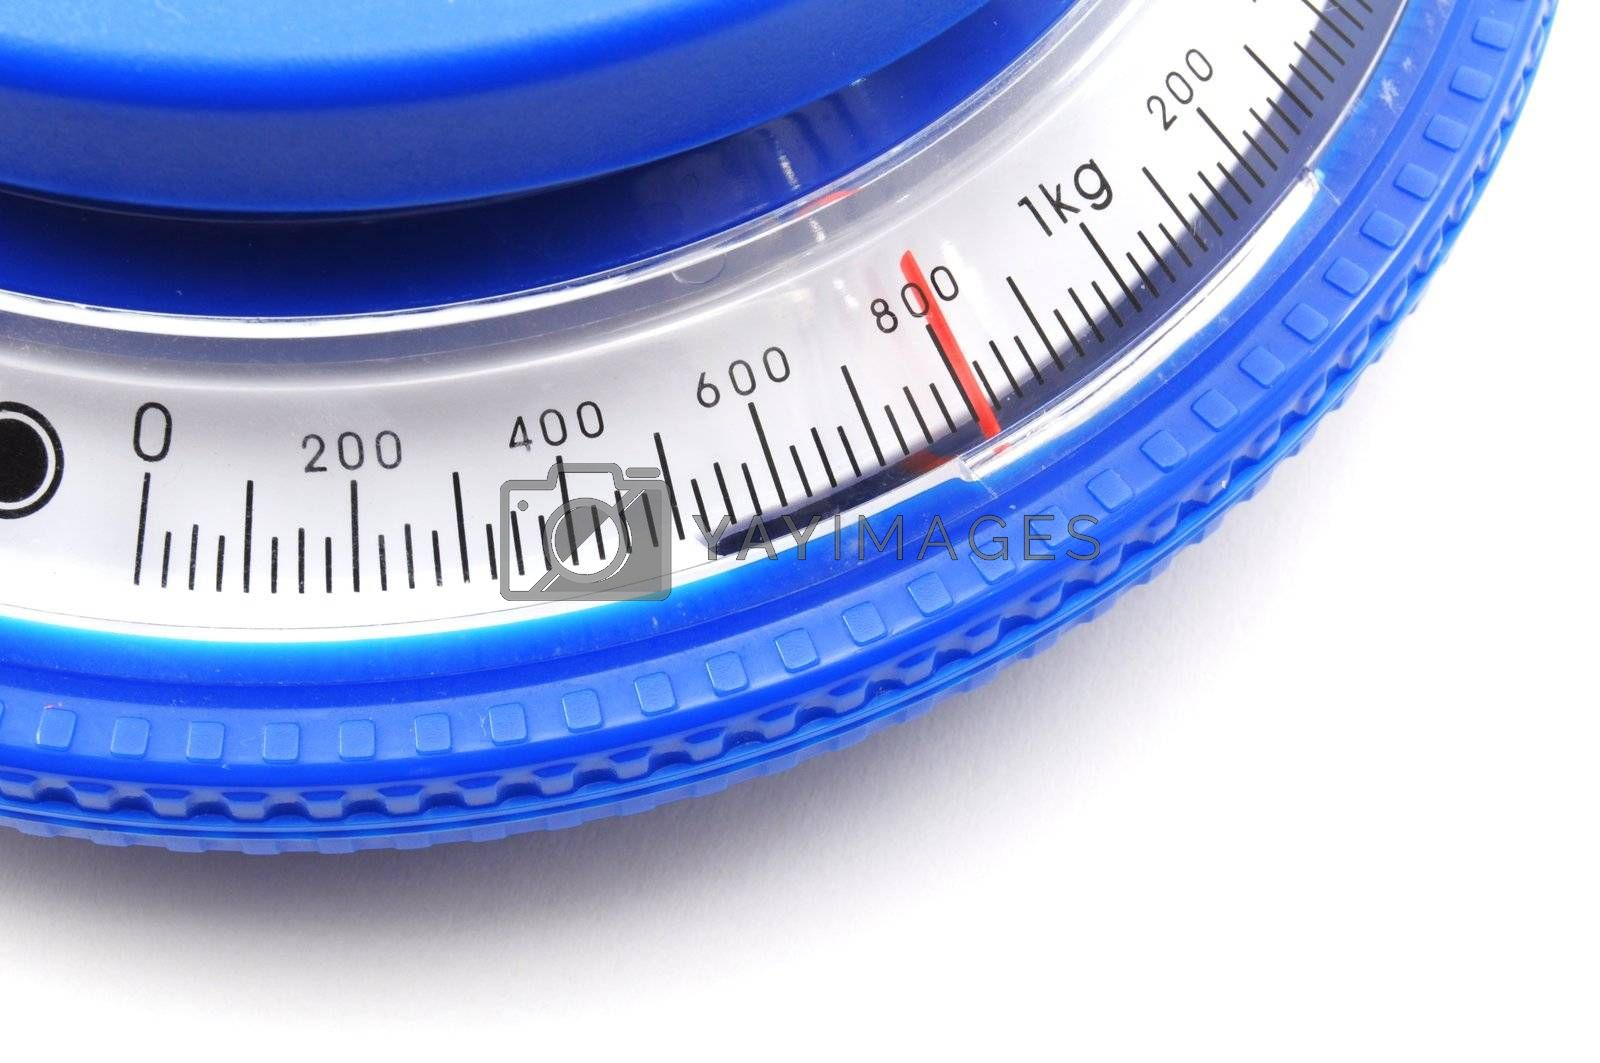 blue kitchen scales or balance showing cooking concept